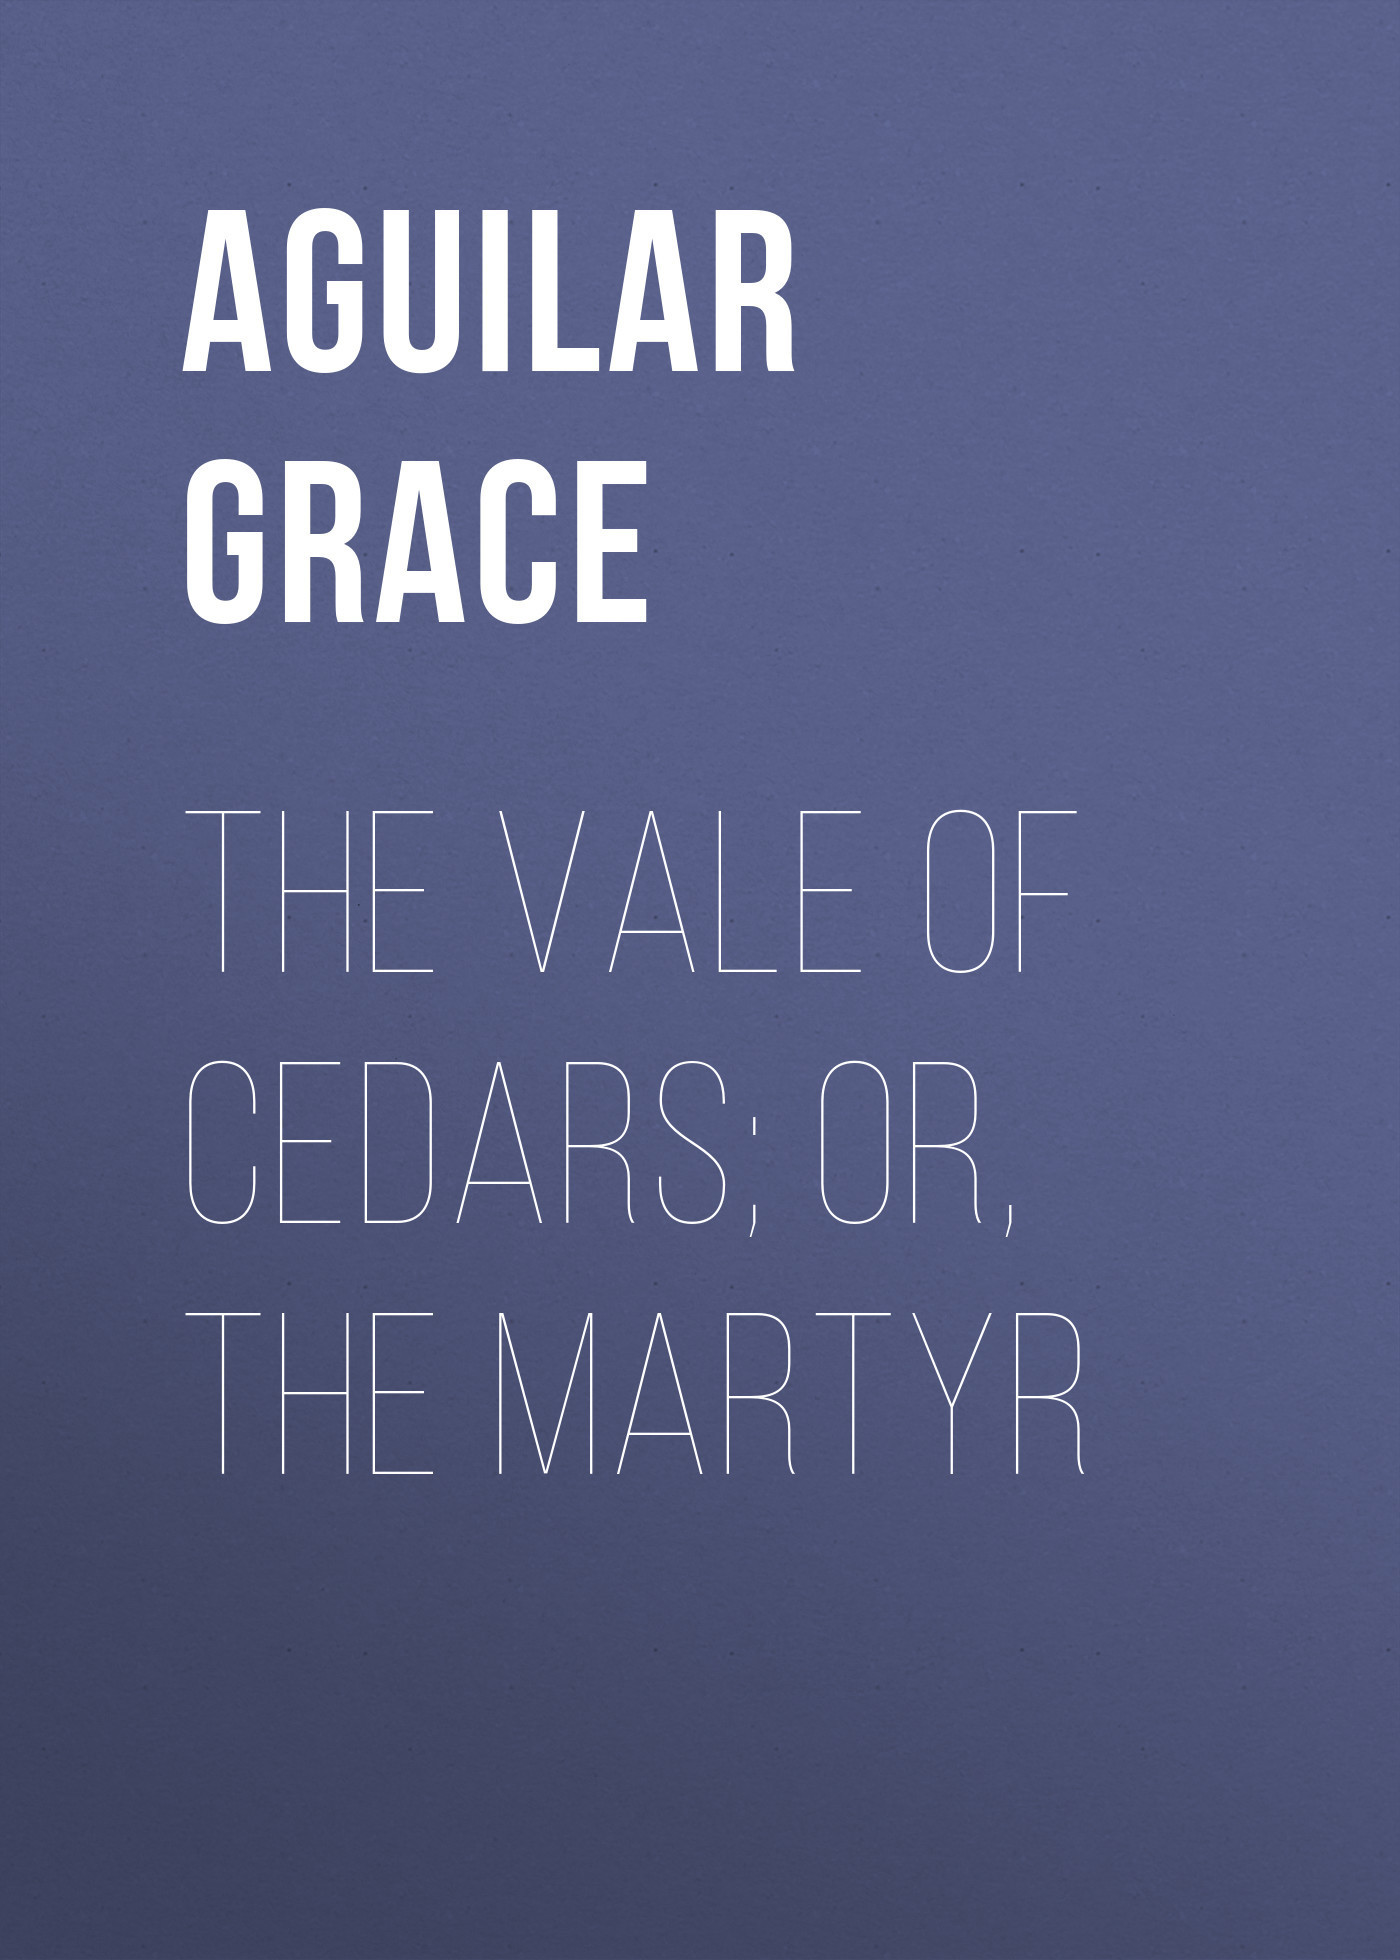 Aguilar Grace The Vale of Cedars; Or, The Martyr картридж для принтера befonfor crg 525 725 925 toner cartridge hp ce285a 285 285a 85a hp laserjet p1102 1102w m1132 1212 1214 1217 for lbp 6000 3010 ce285a